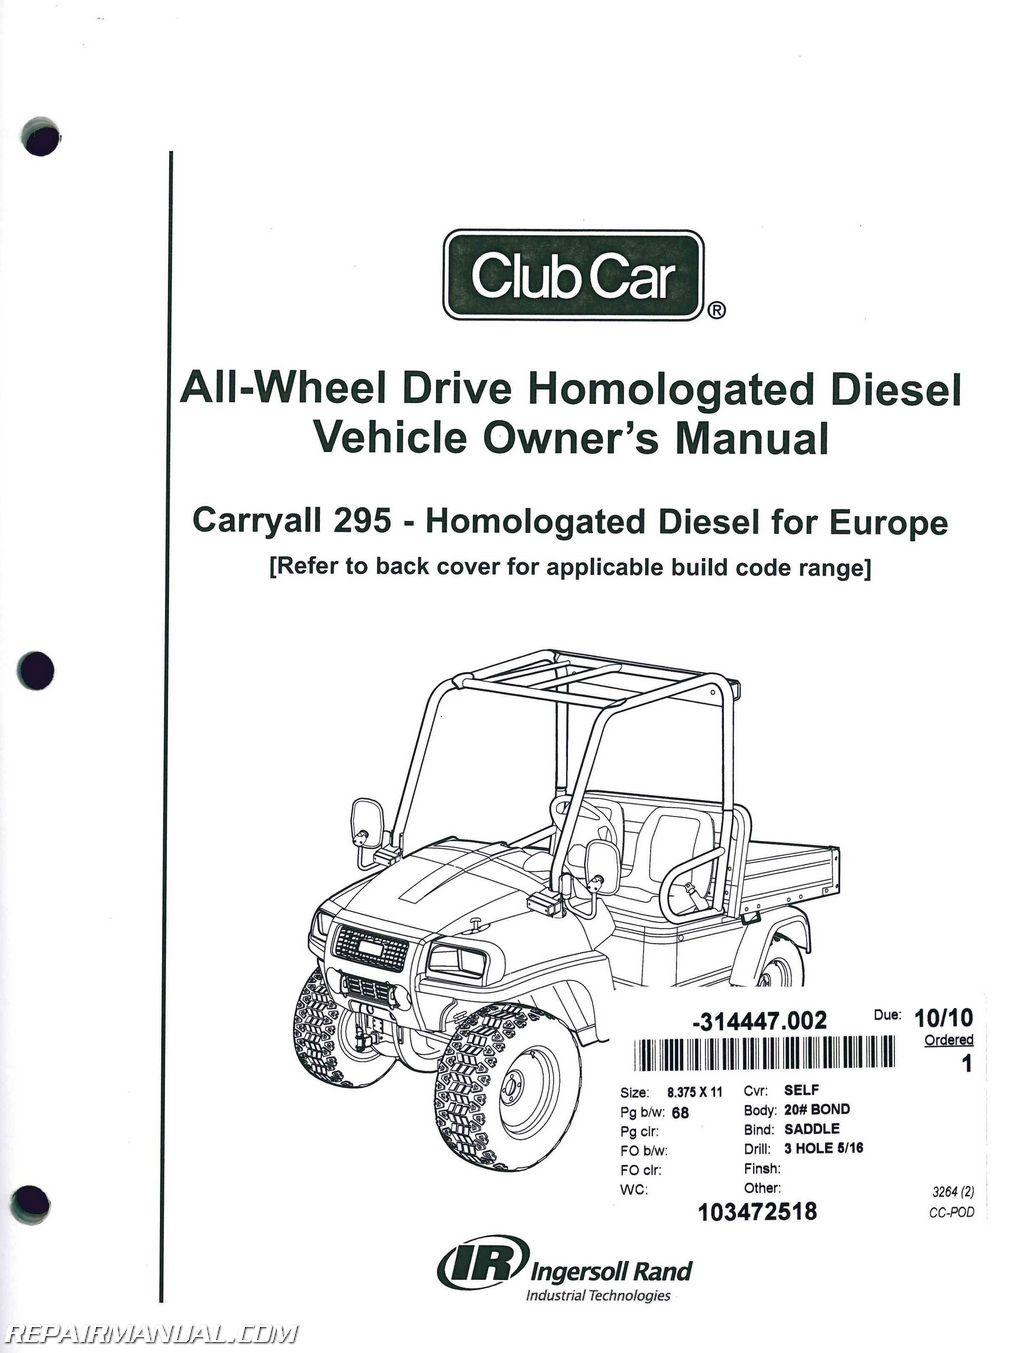 club car carryall 295 homologated diesel vehicle owners manual rh repairmanual com club car precedent user manual Car Manual Pages